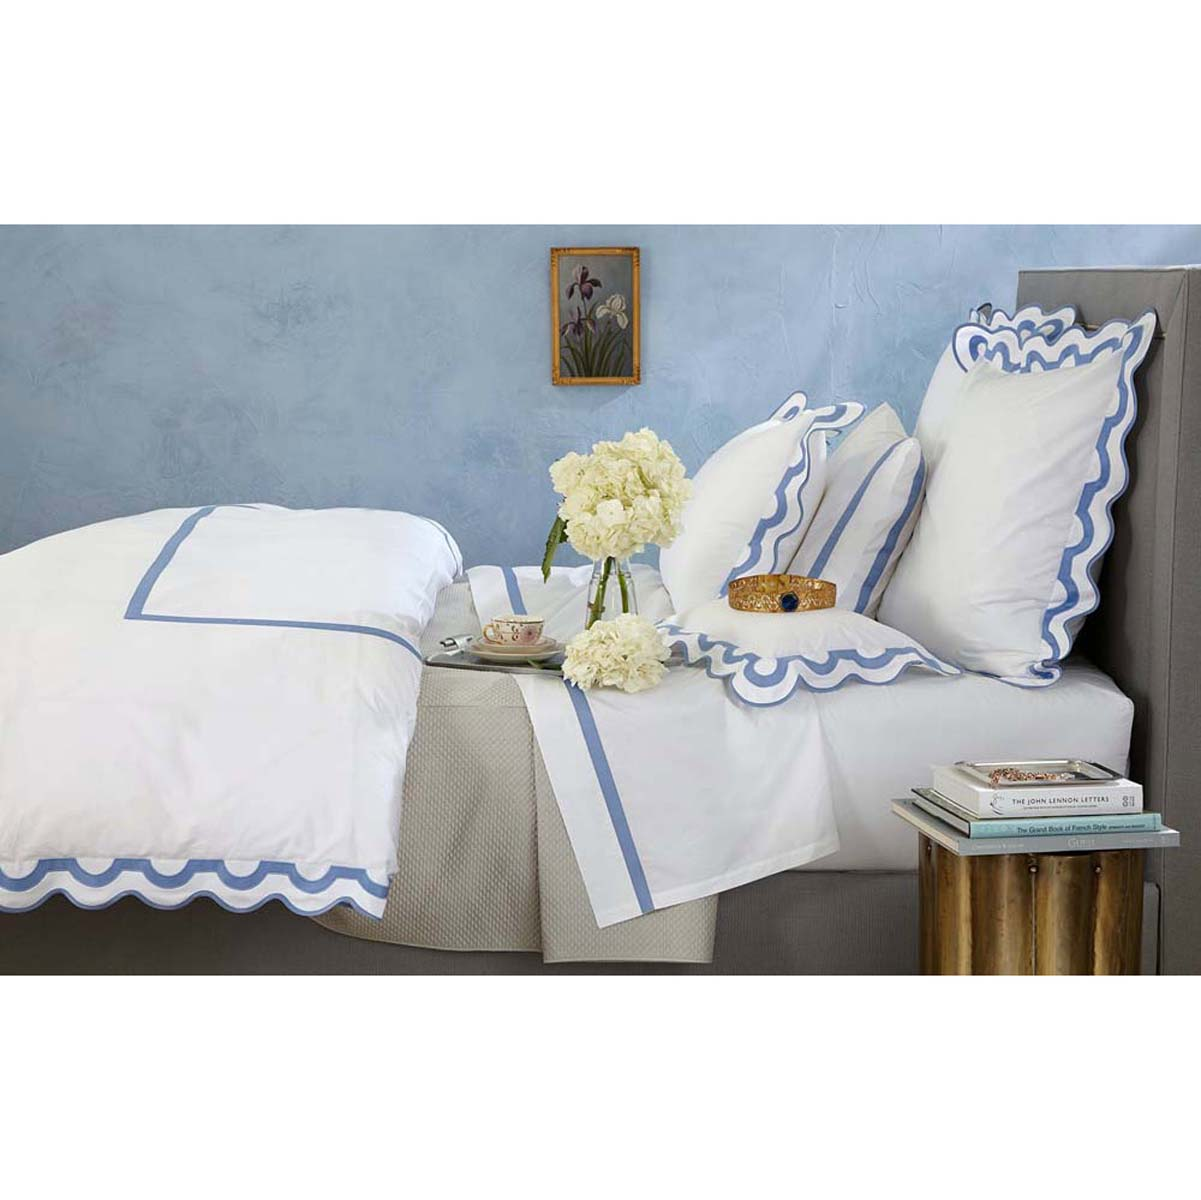 Luxurious Bed Linens Part - 27: Mirasol Luxury Bed Linens By Matouk